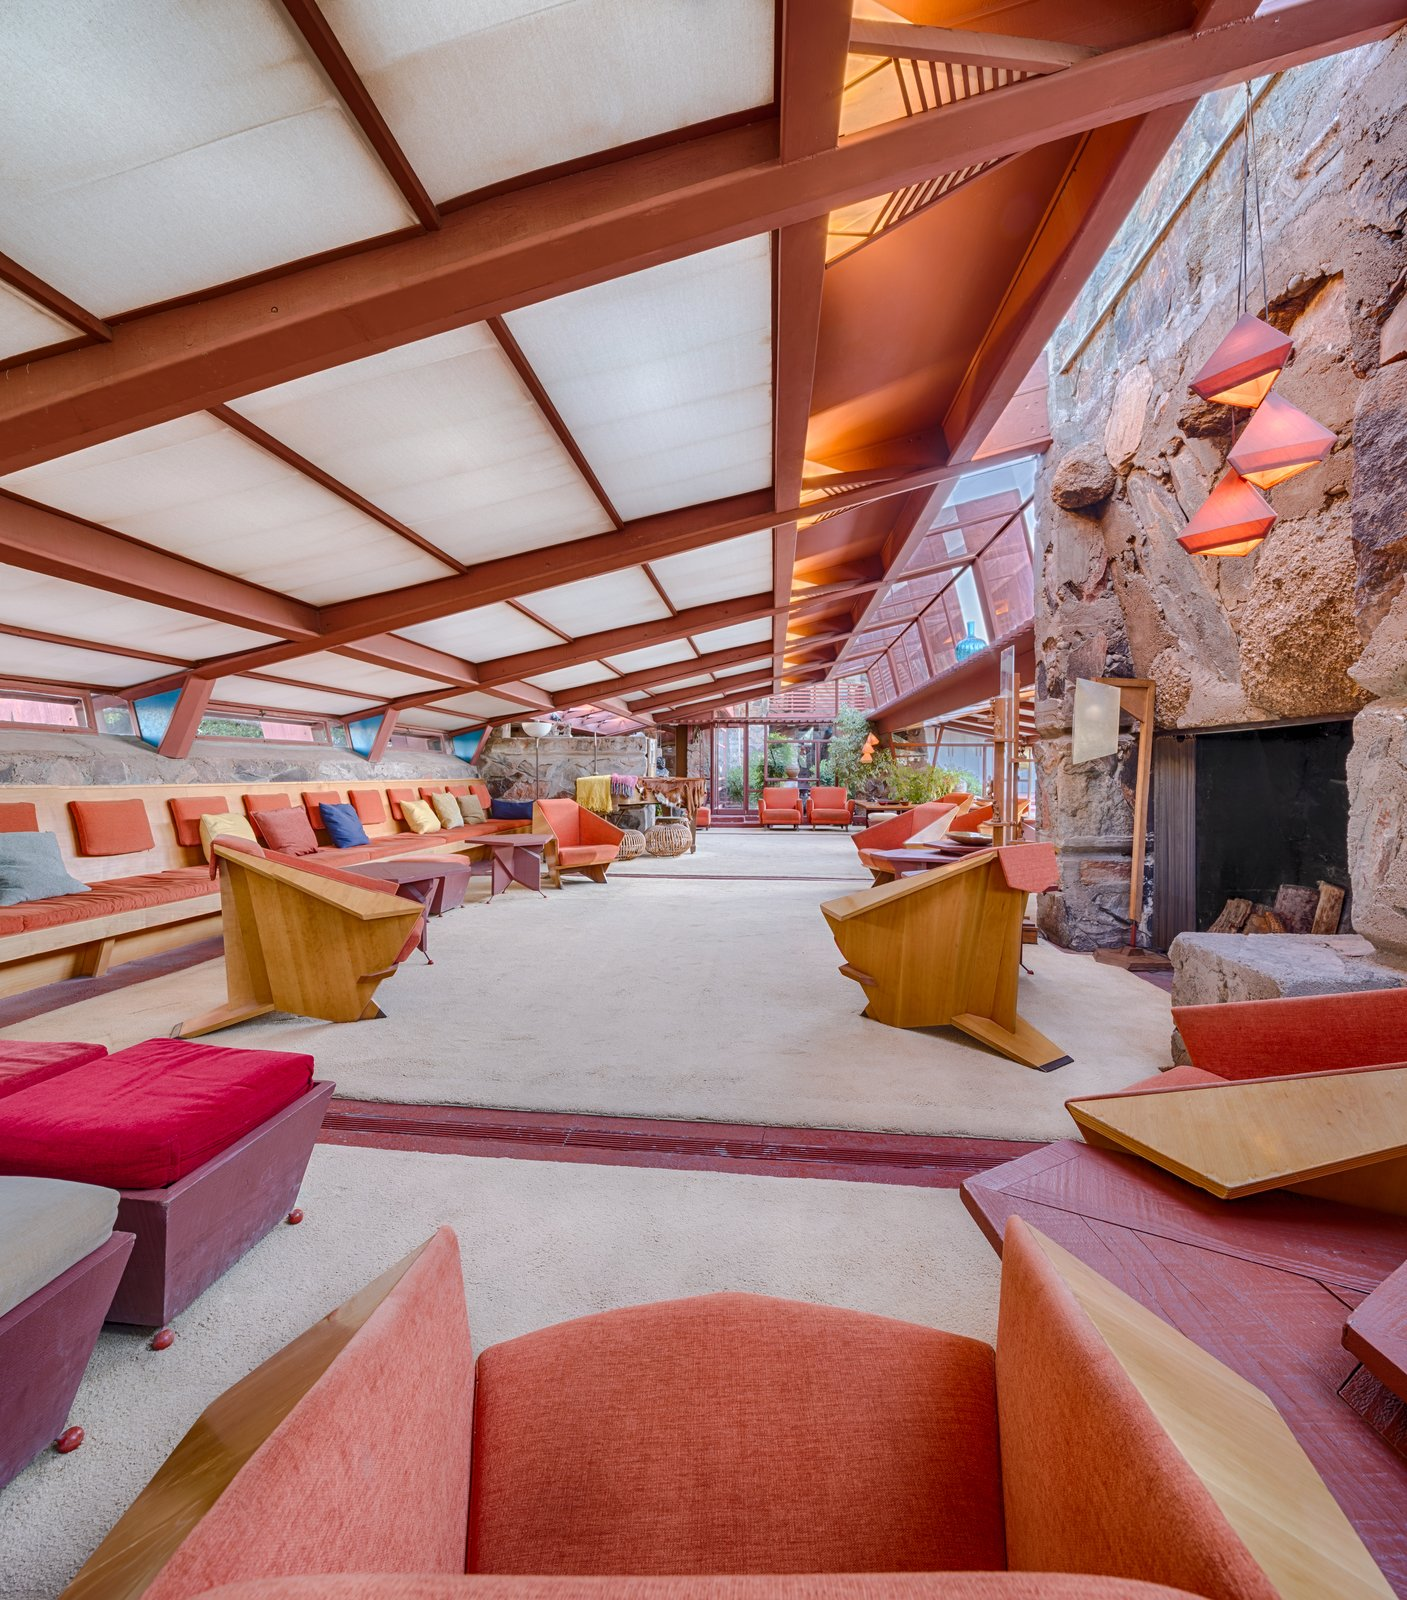 Frank Lloyd Wright's School of Architecture Has Another Chance to Stay Open